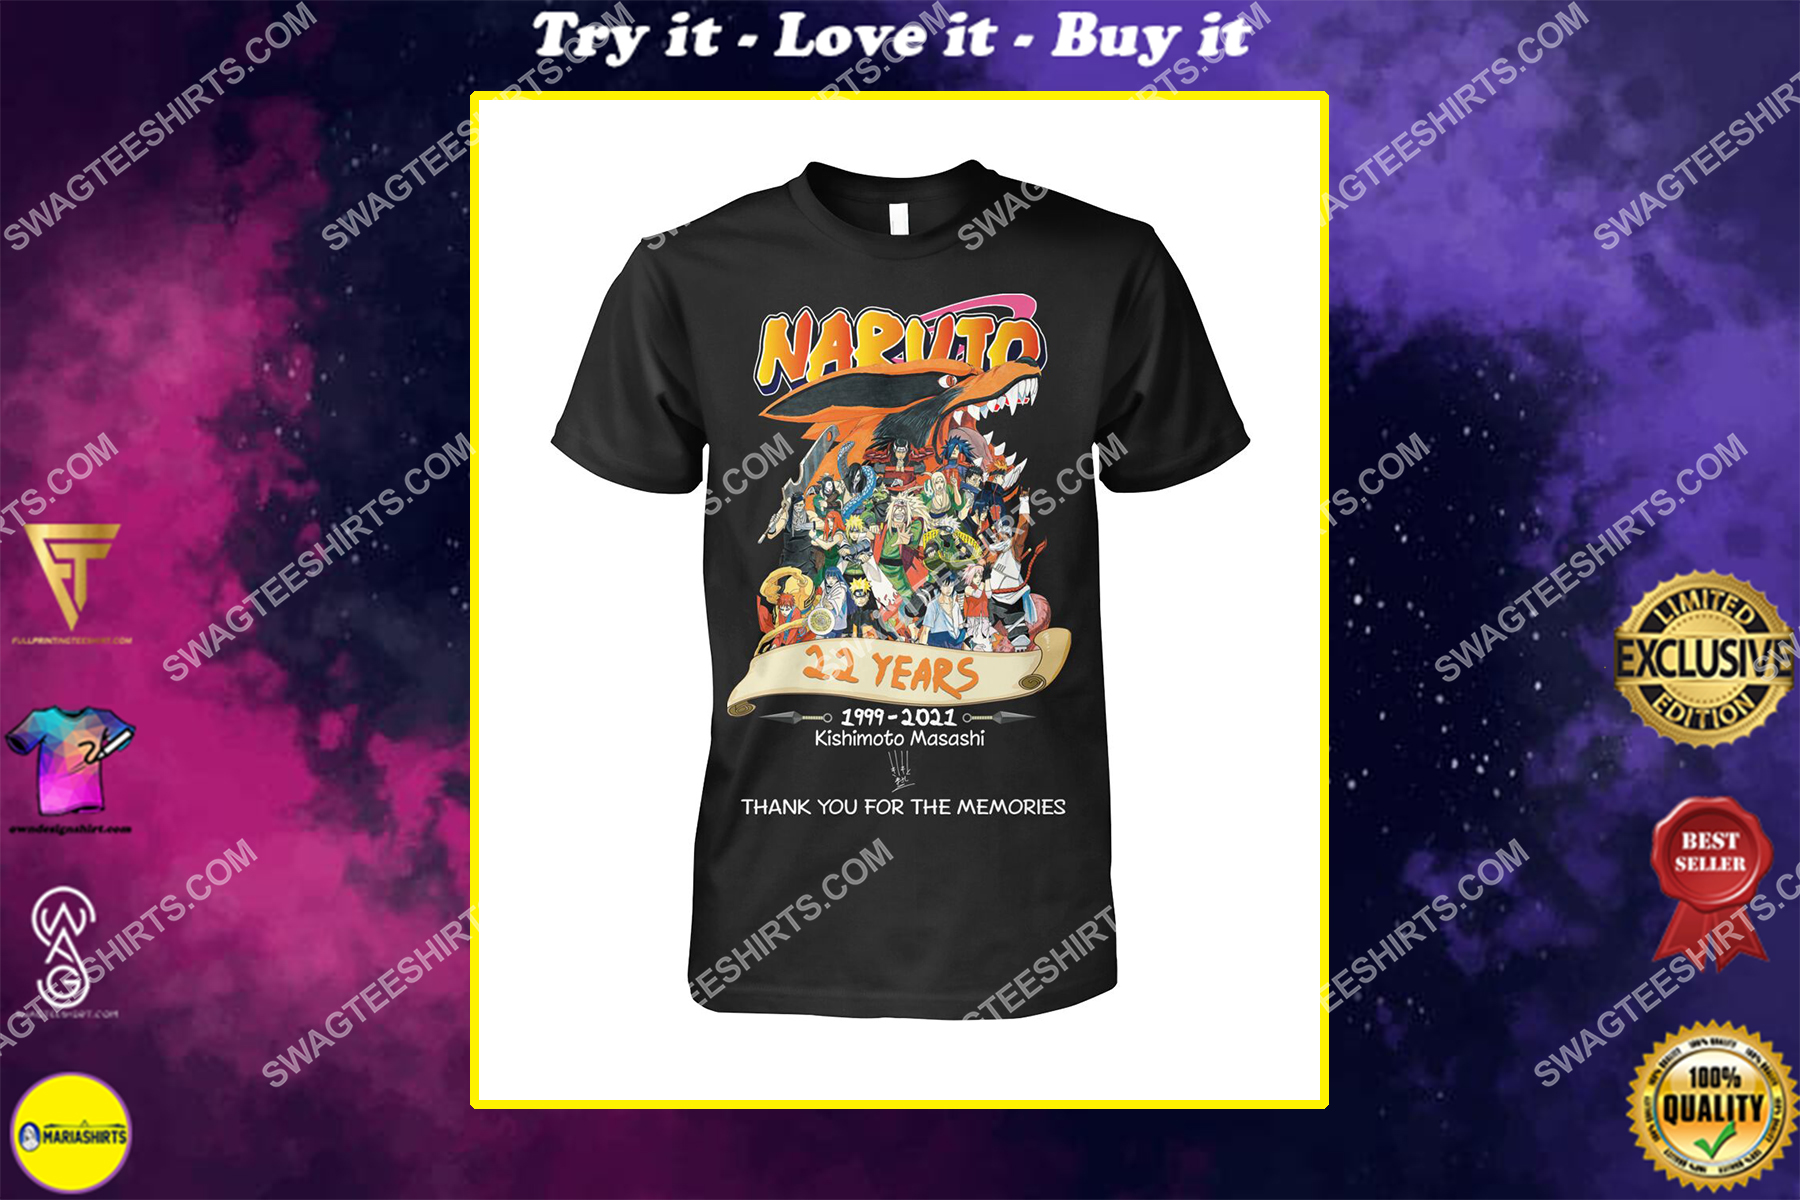 naruto 22 years thank you for memories signatures shirt